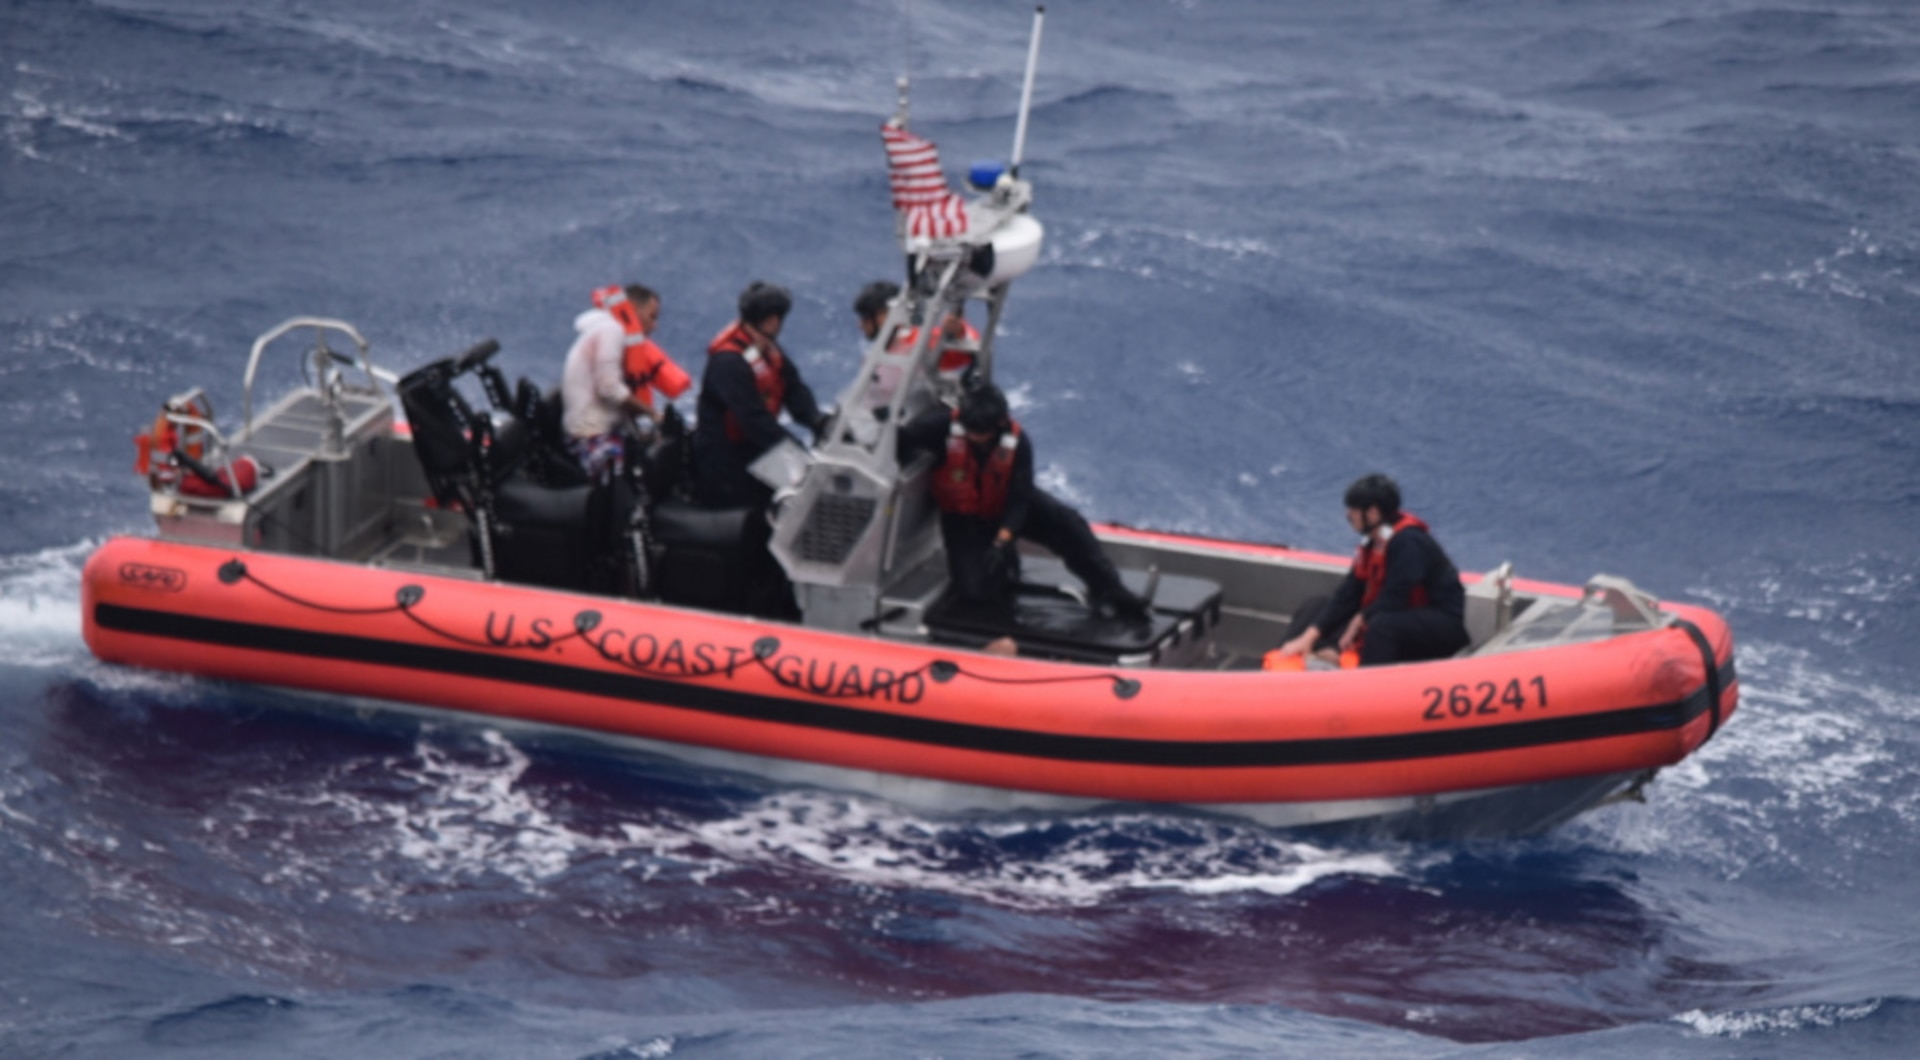 The Coast Guard Cutter Thetis' crewmembers deploy the cutter's small boat to rescue people in the water approximately 32 miles southeast of Key West, Florida, July 7, 2021. The Coast Guard and a good Samaritan rescued 13 people from the water. (U.S. Coast Guard photo by Coast Guard Cutter Thetis crew)